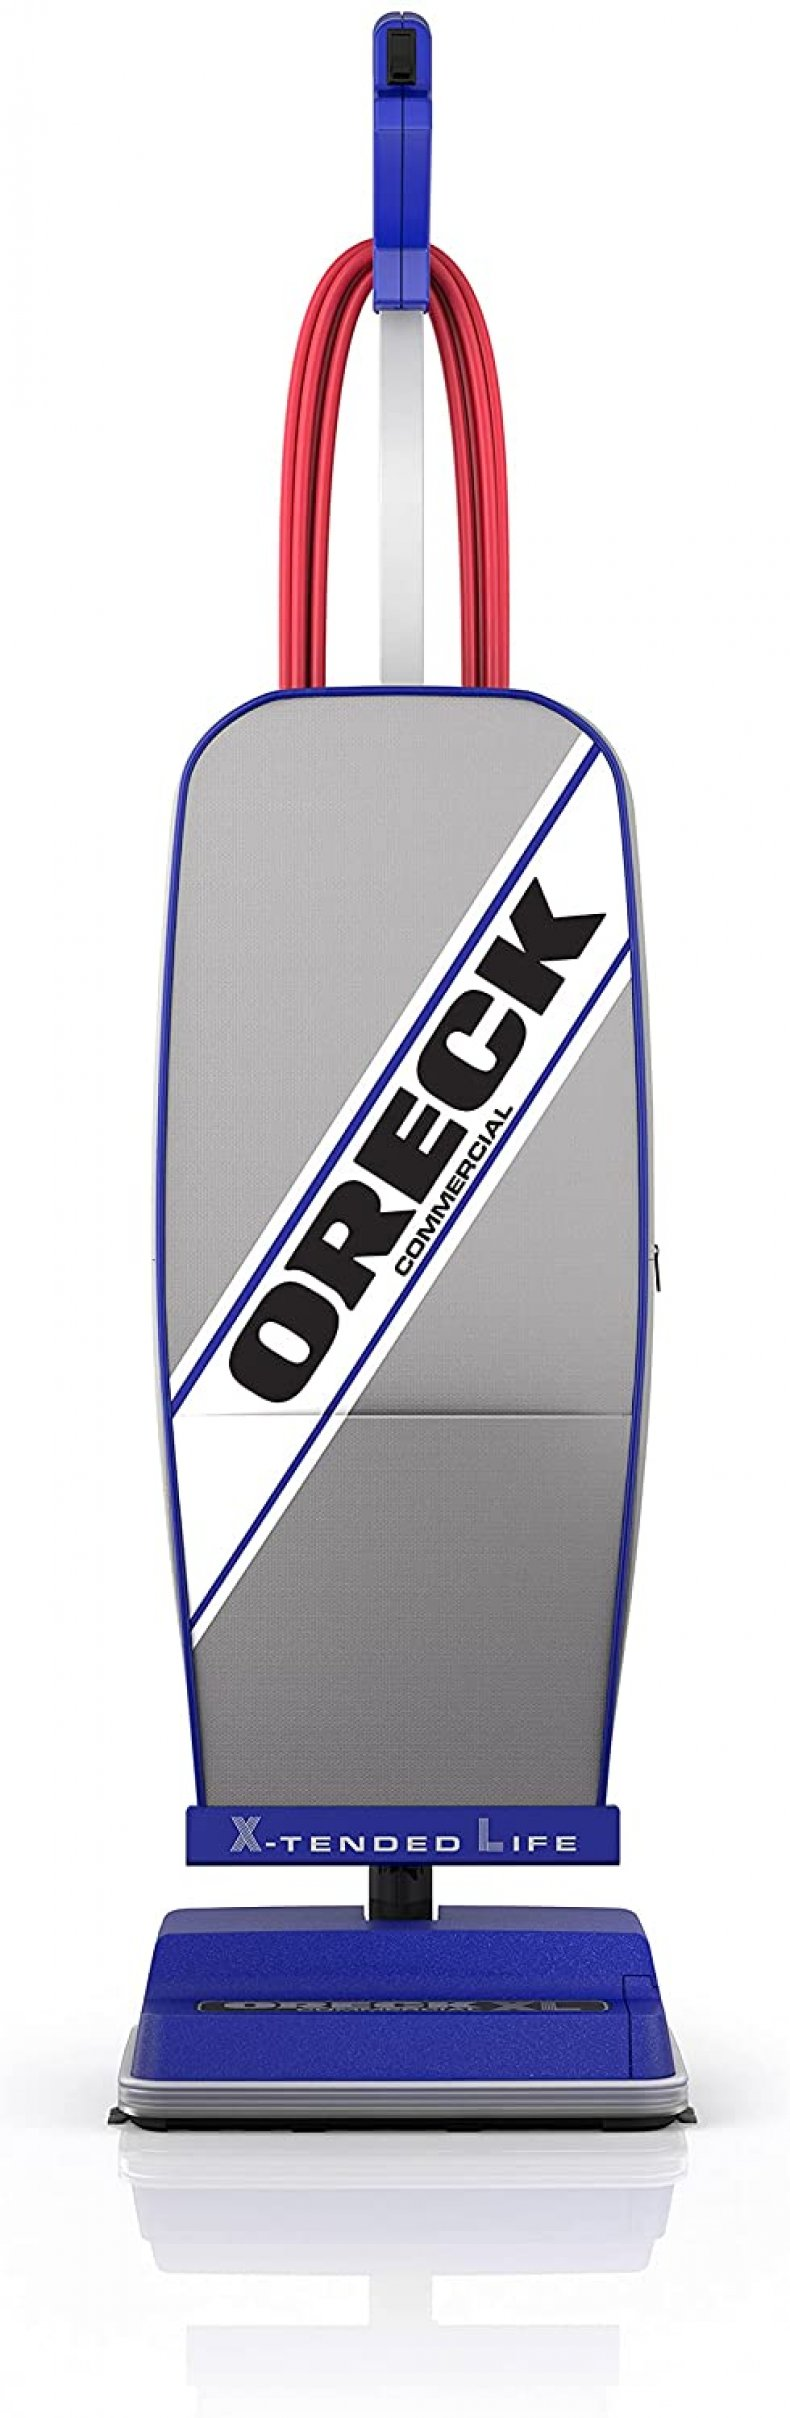 ORECK XL COMMERCIAL Upright Vacuum Cleaner